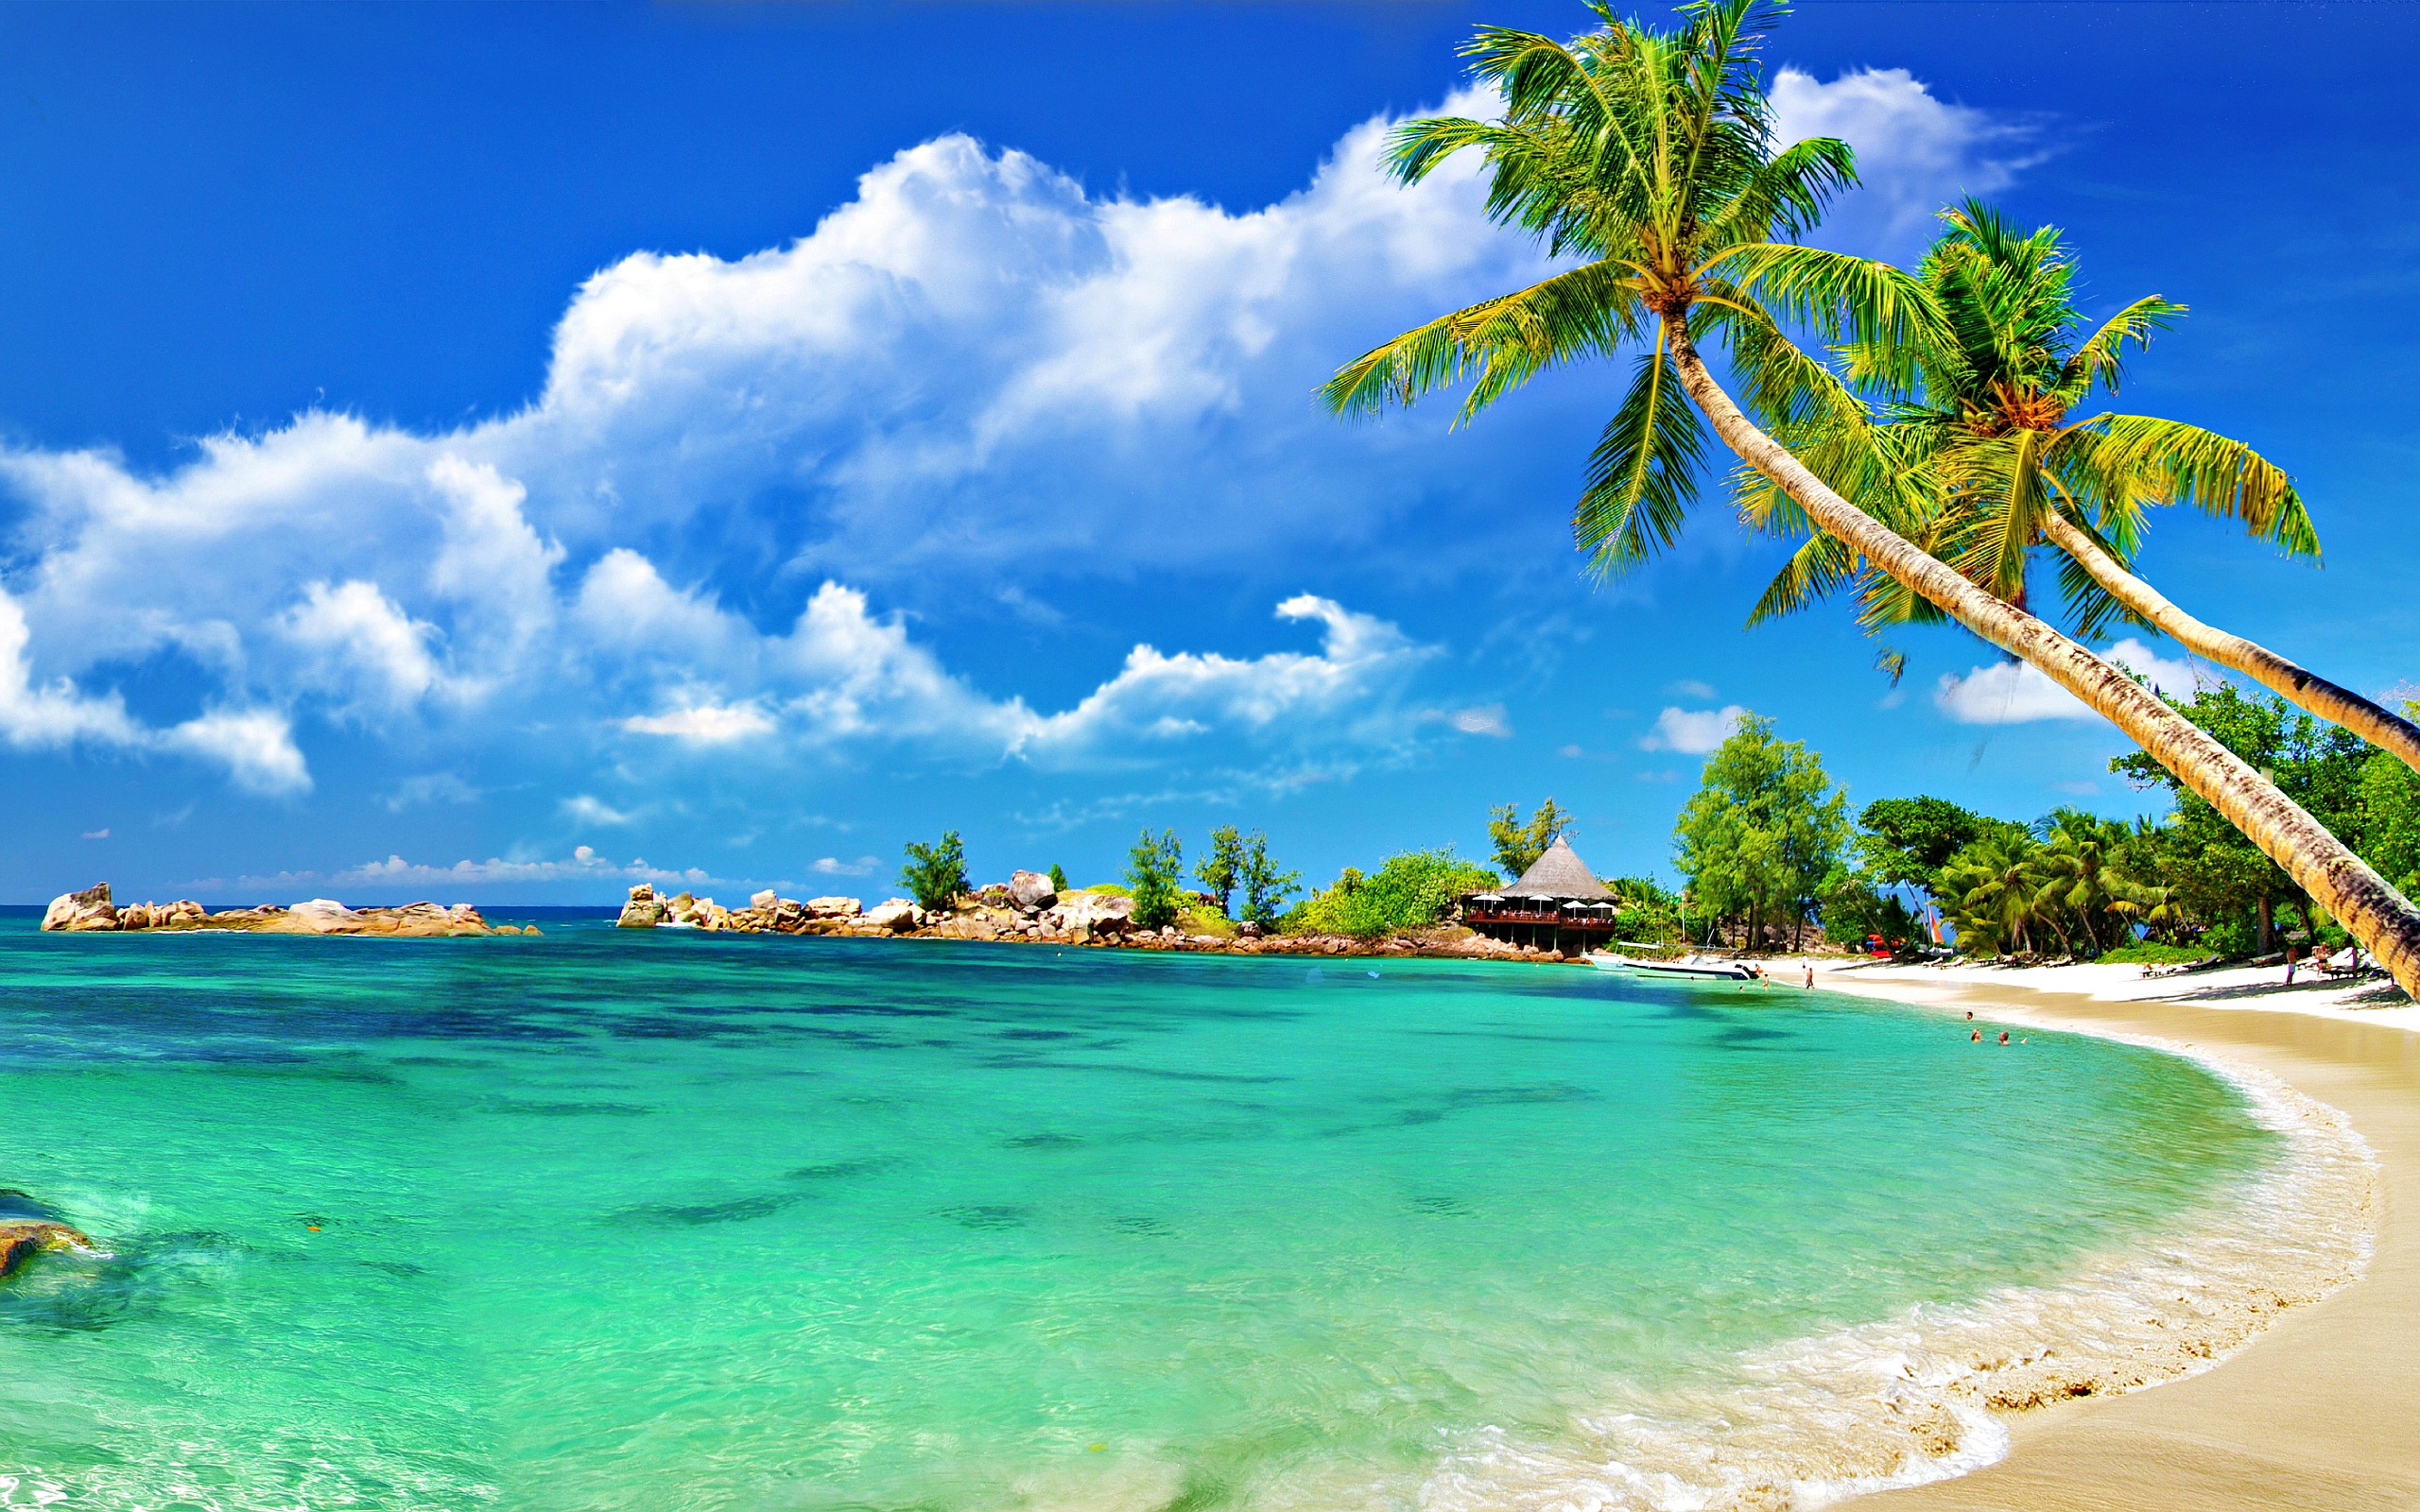 Beach Wallpapers, wallpaper, Tropical Beach Wallpapers hd wallpaper ...